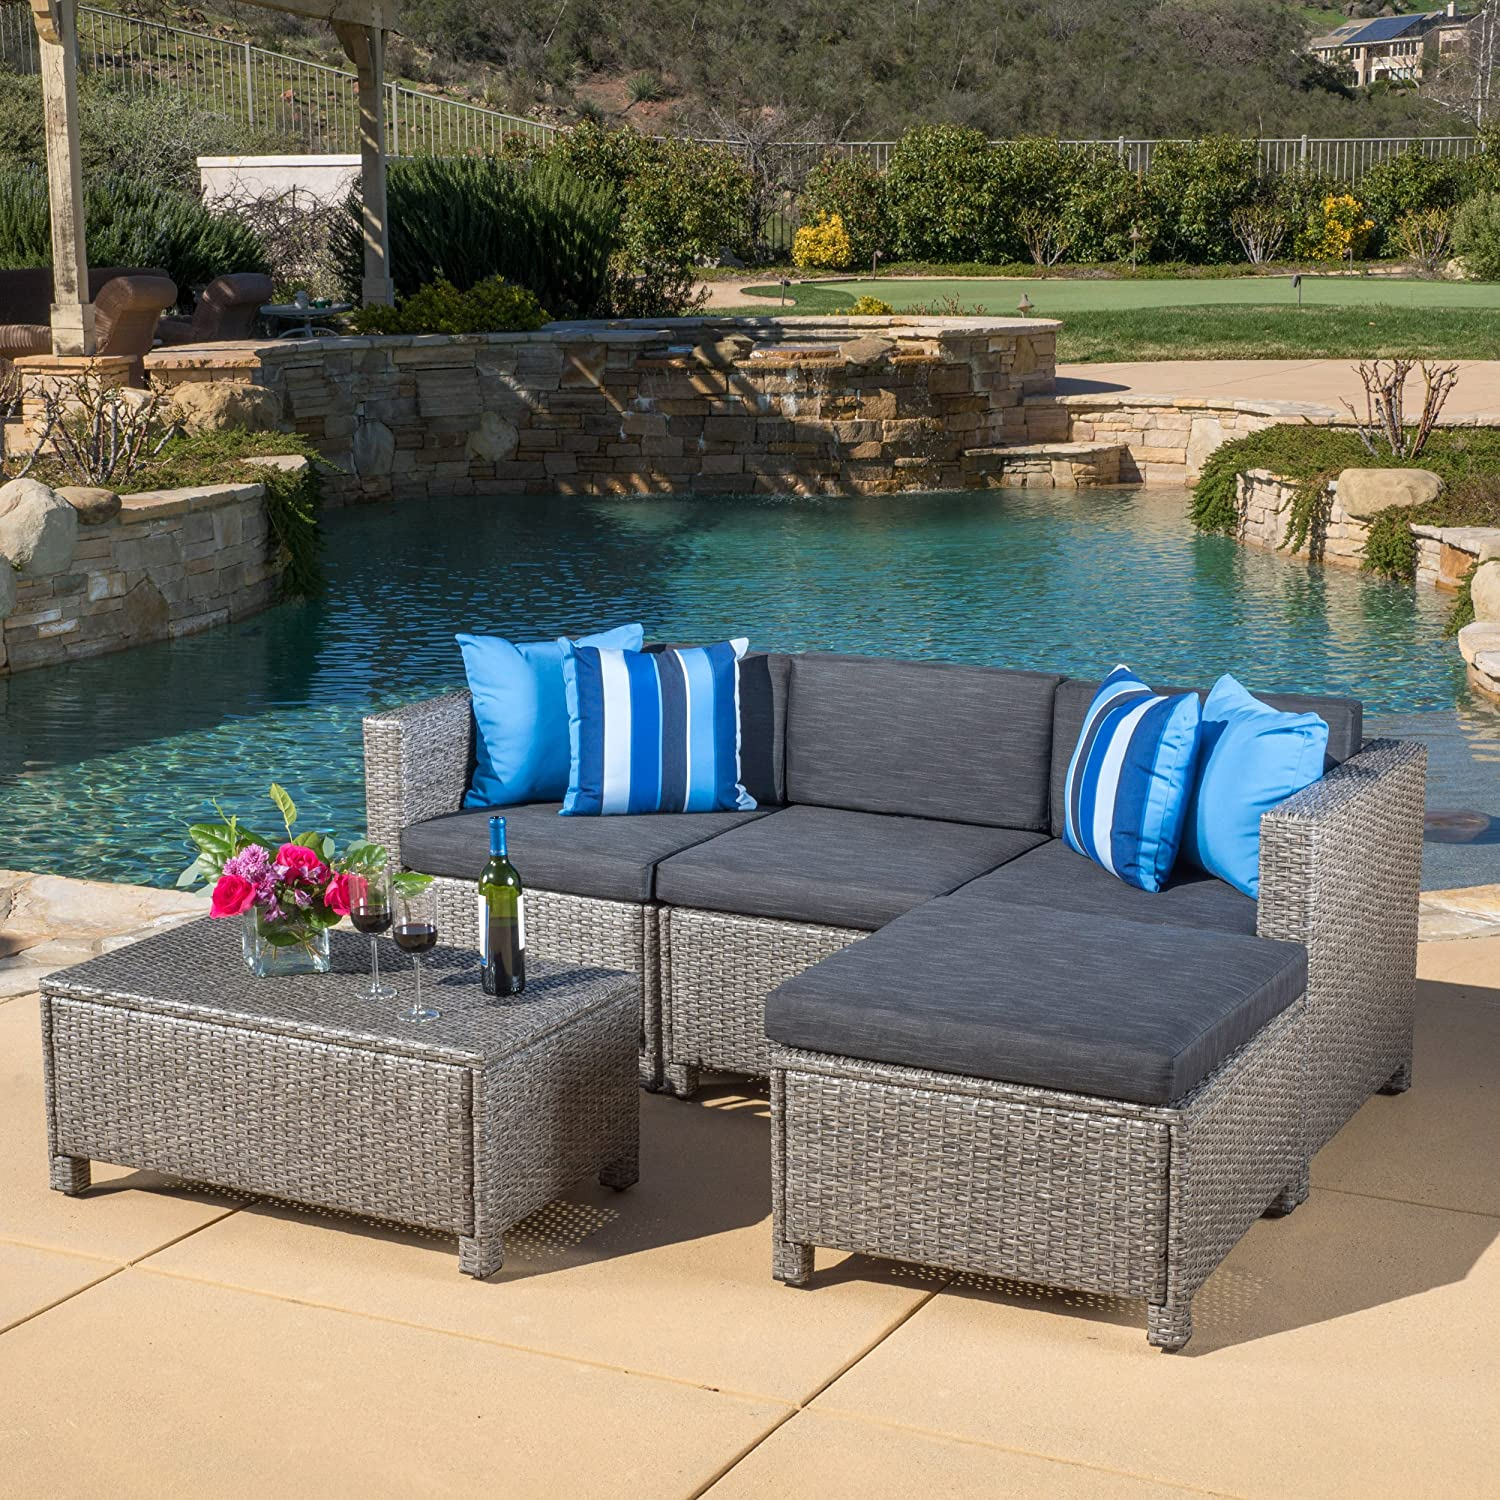 Amazoncom Venice Outdoor Patio Furniture Wicker Sectional Sofa